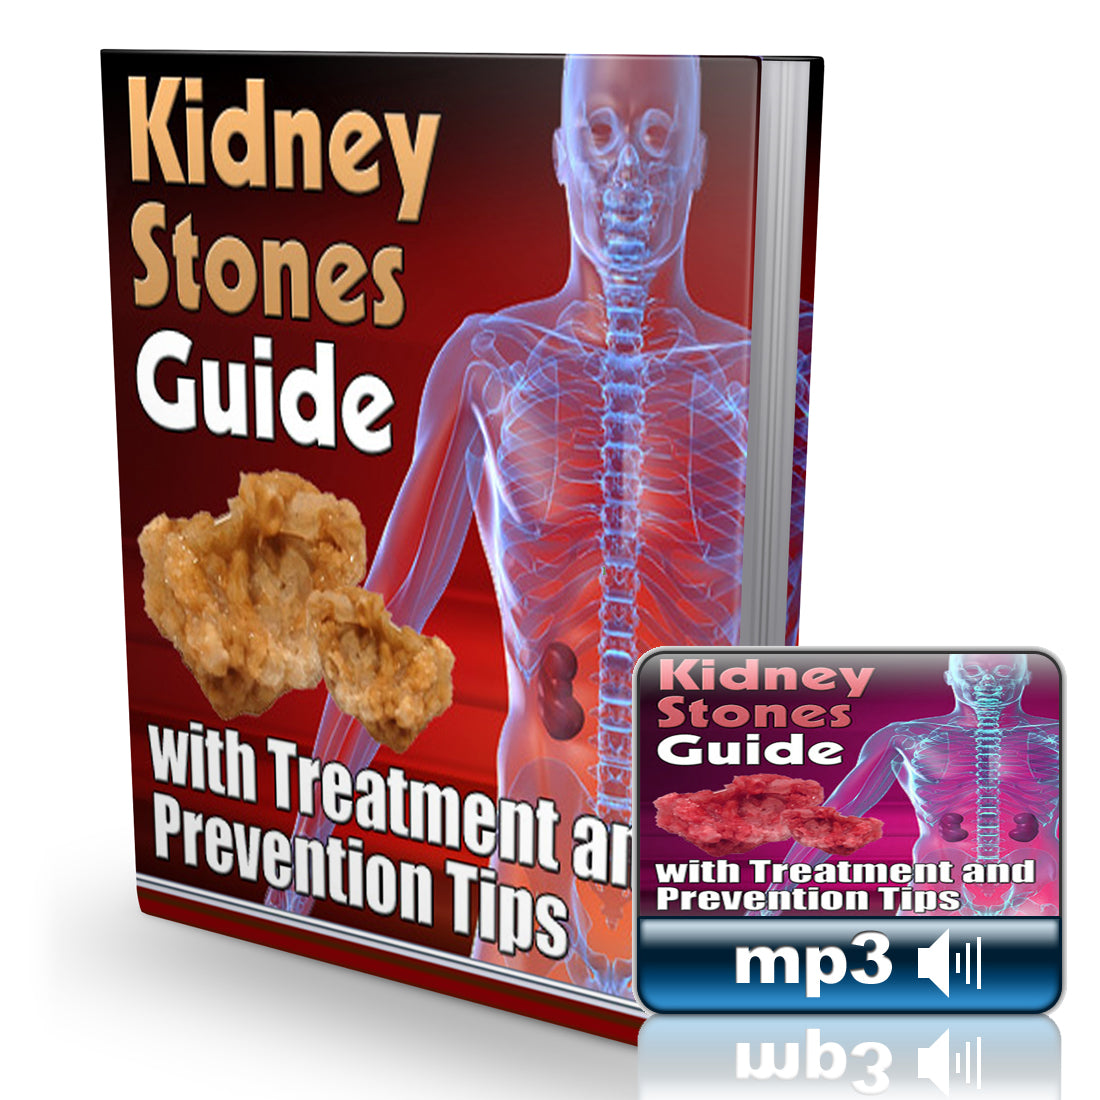 Natural Kidney Stones Guide Combo - Instant Downloadable Book (50+ pages) + Audio Book (Over 90 minutes) - traversebayfarms